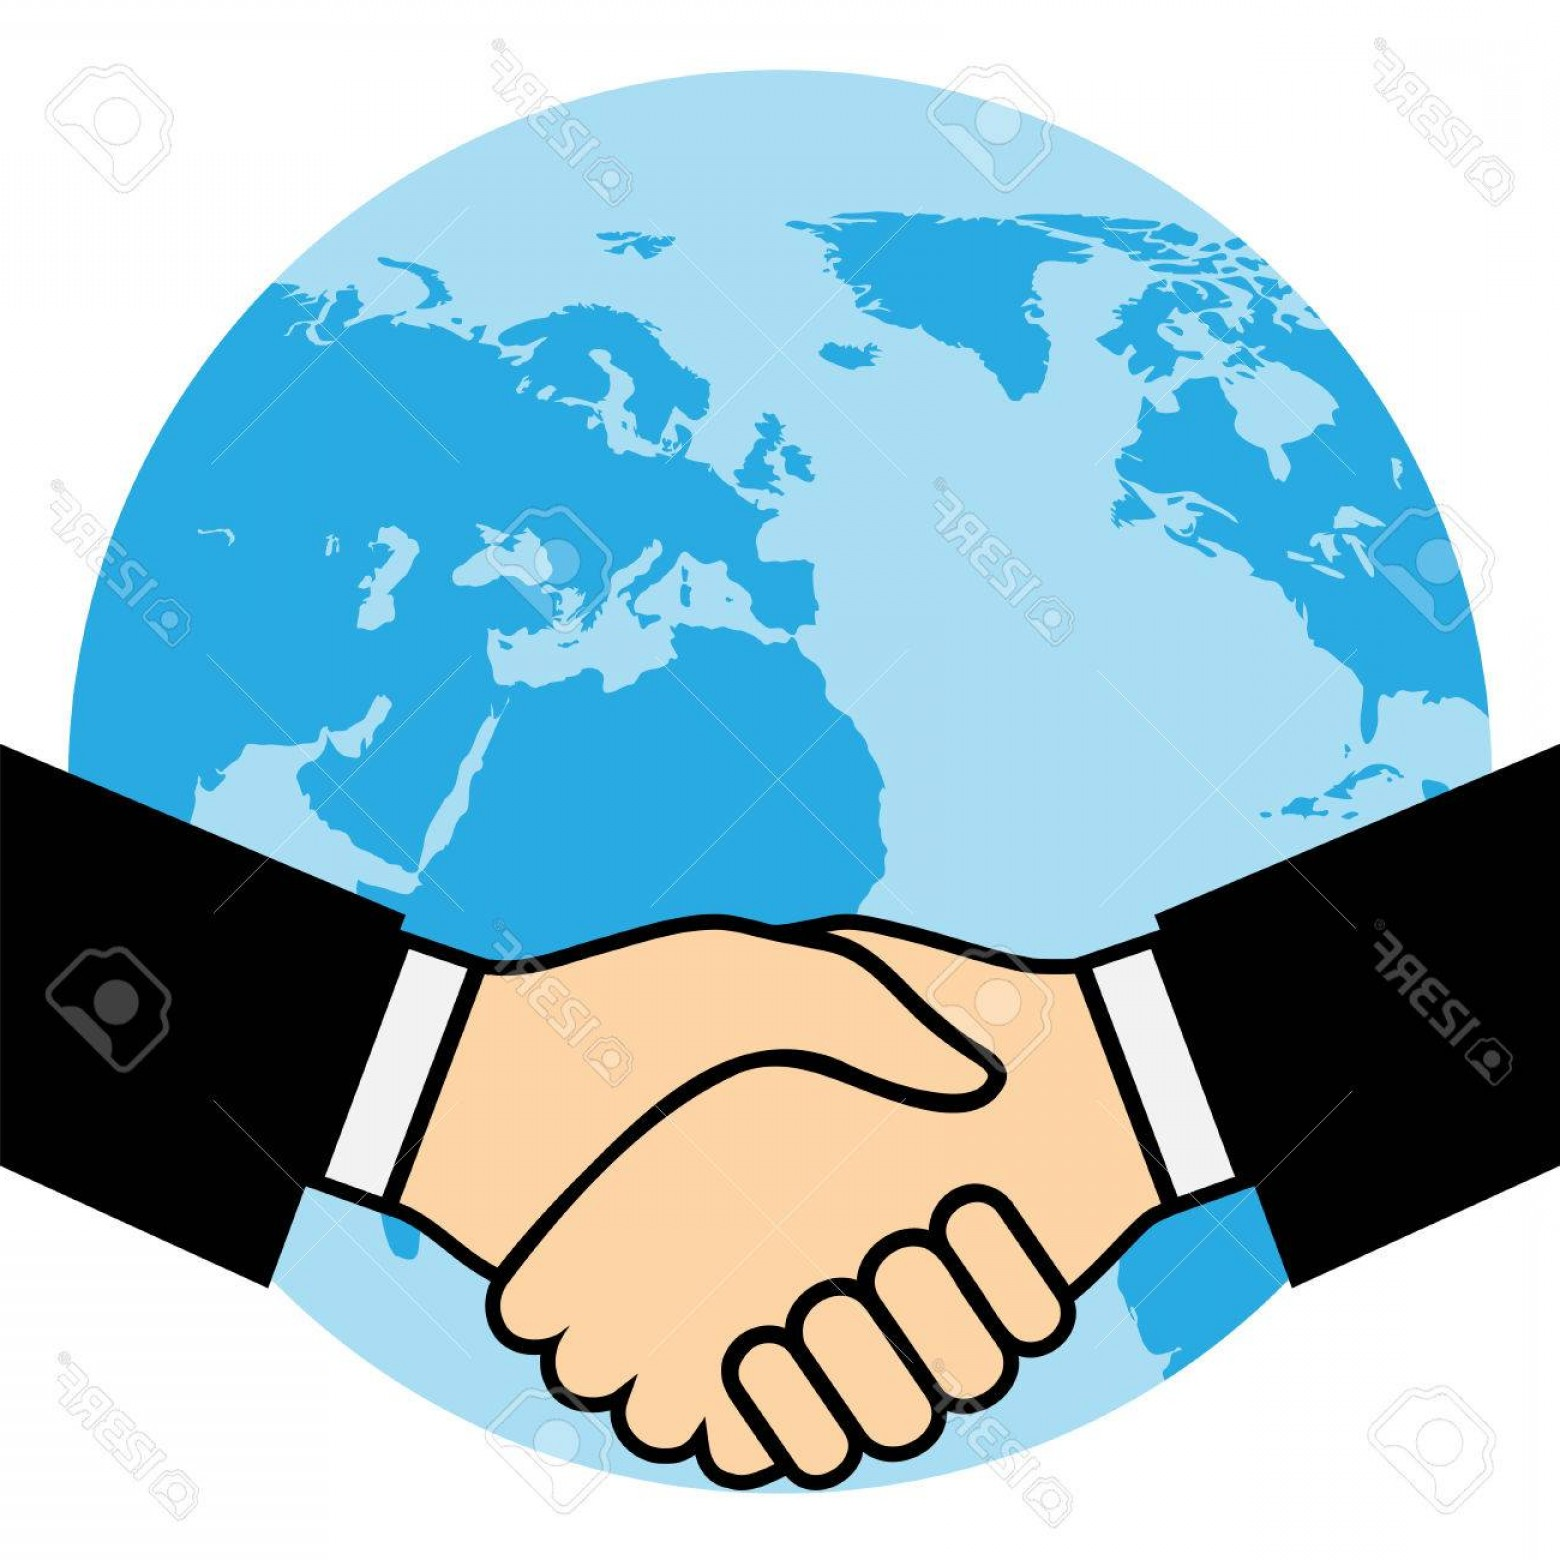 Handshake Clip Art Vector: Photostock Vector Handshake Of Business Partners Against The Background Of The Earth